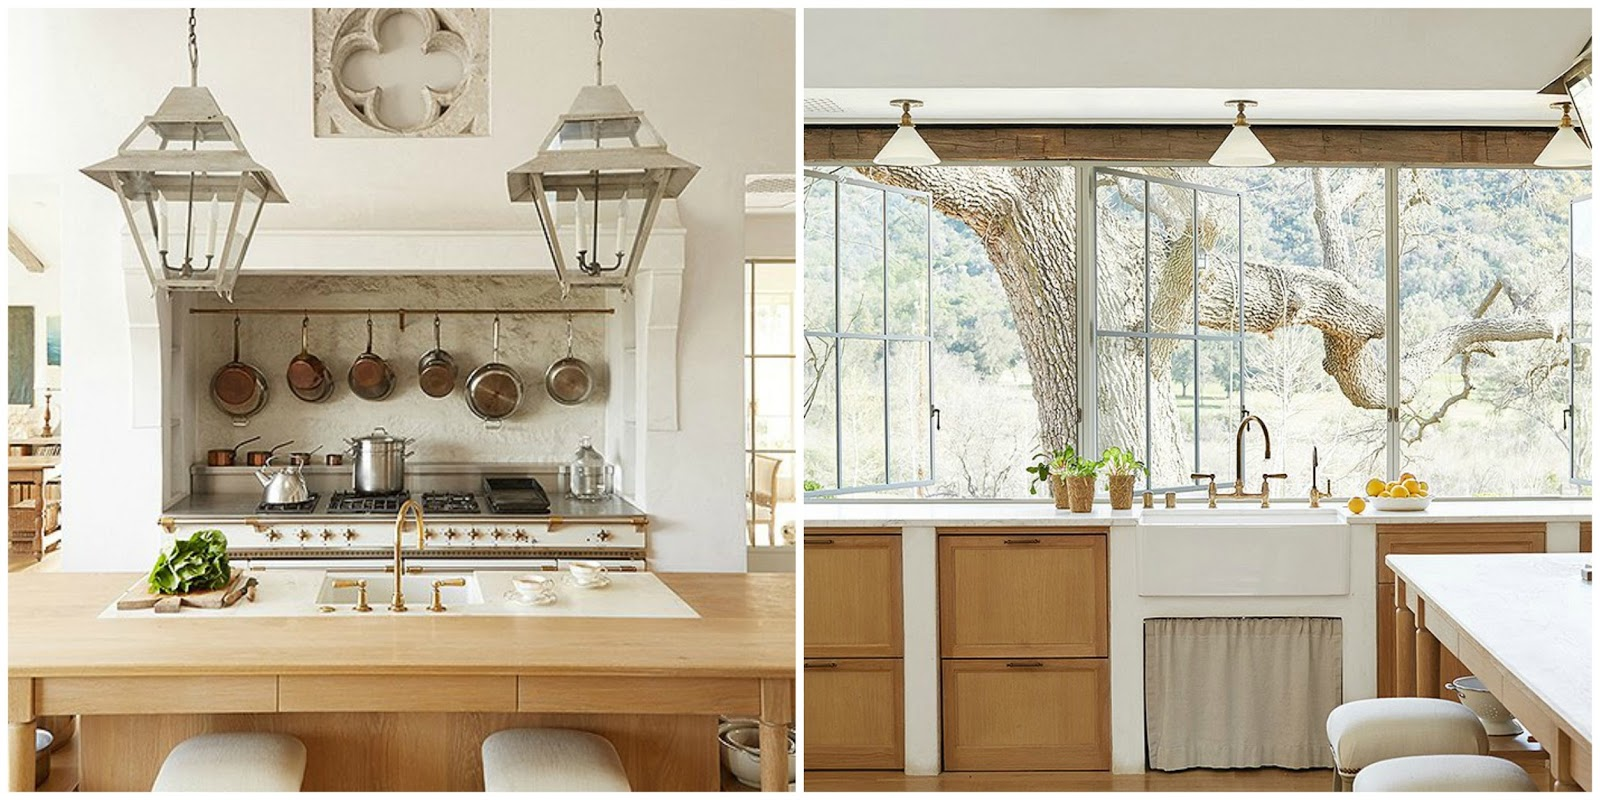 Gorgeous modern farmhouse kitchen with white oak cabinetry and Lacanche range at Patina Farm